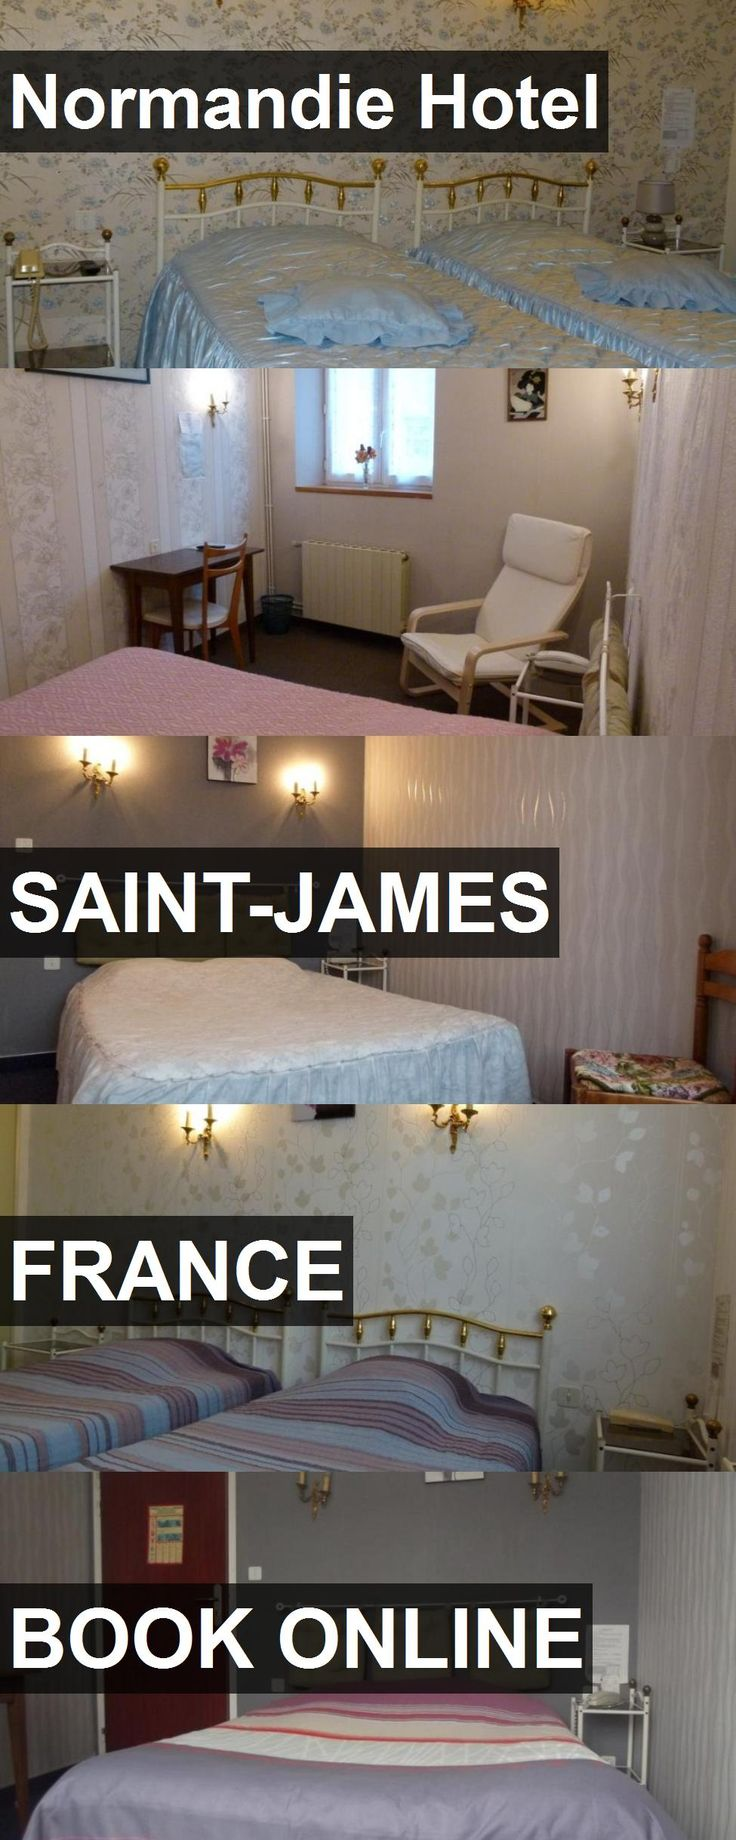 Hotel Normandie Hotel in Saint-James, France. For more information, photos, reviews and best prices please follow the link. #France #Saint-James #NormandieHotel #hotel #travel #vacation